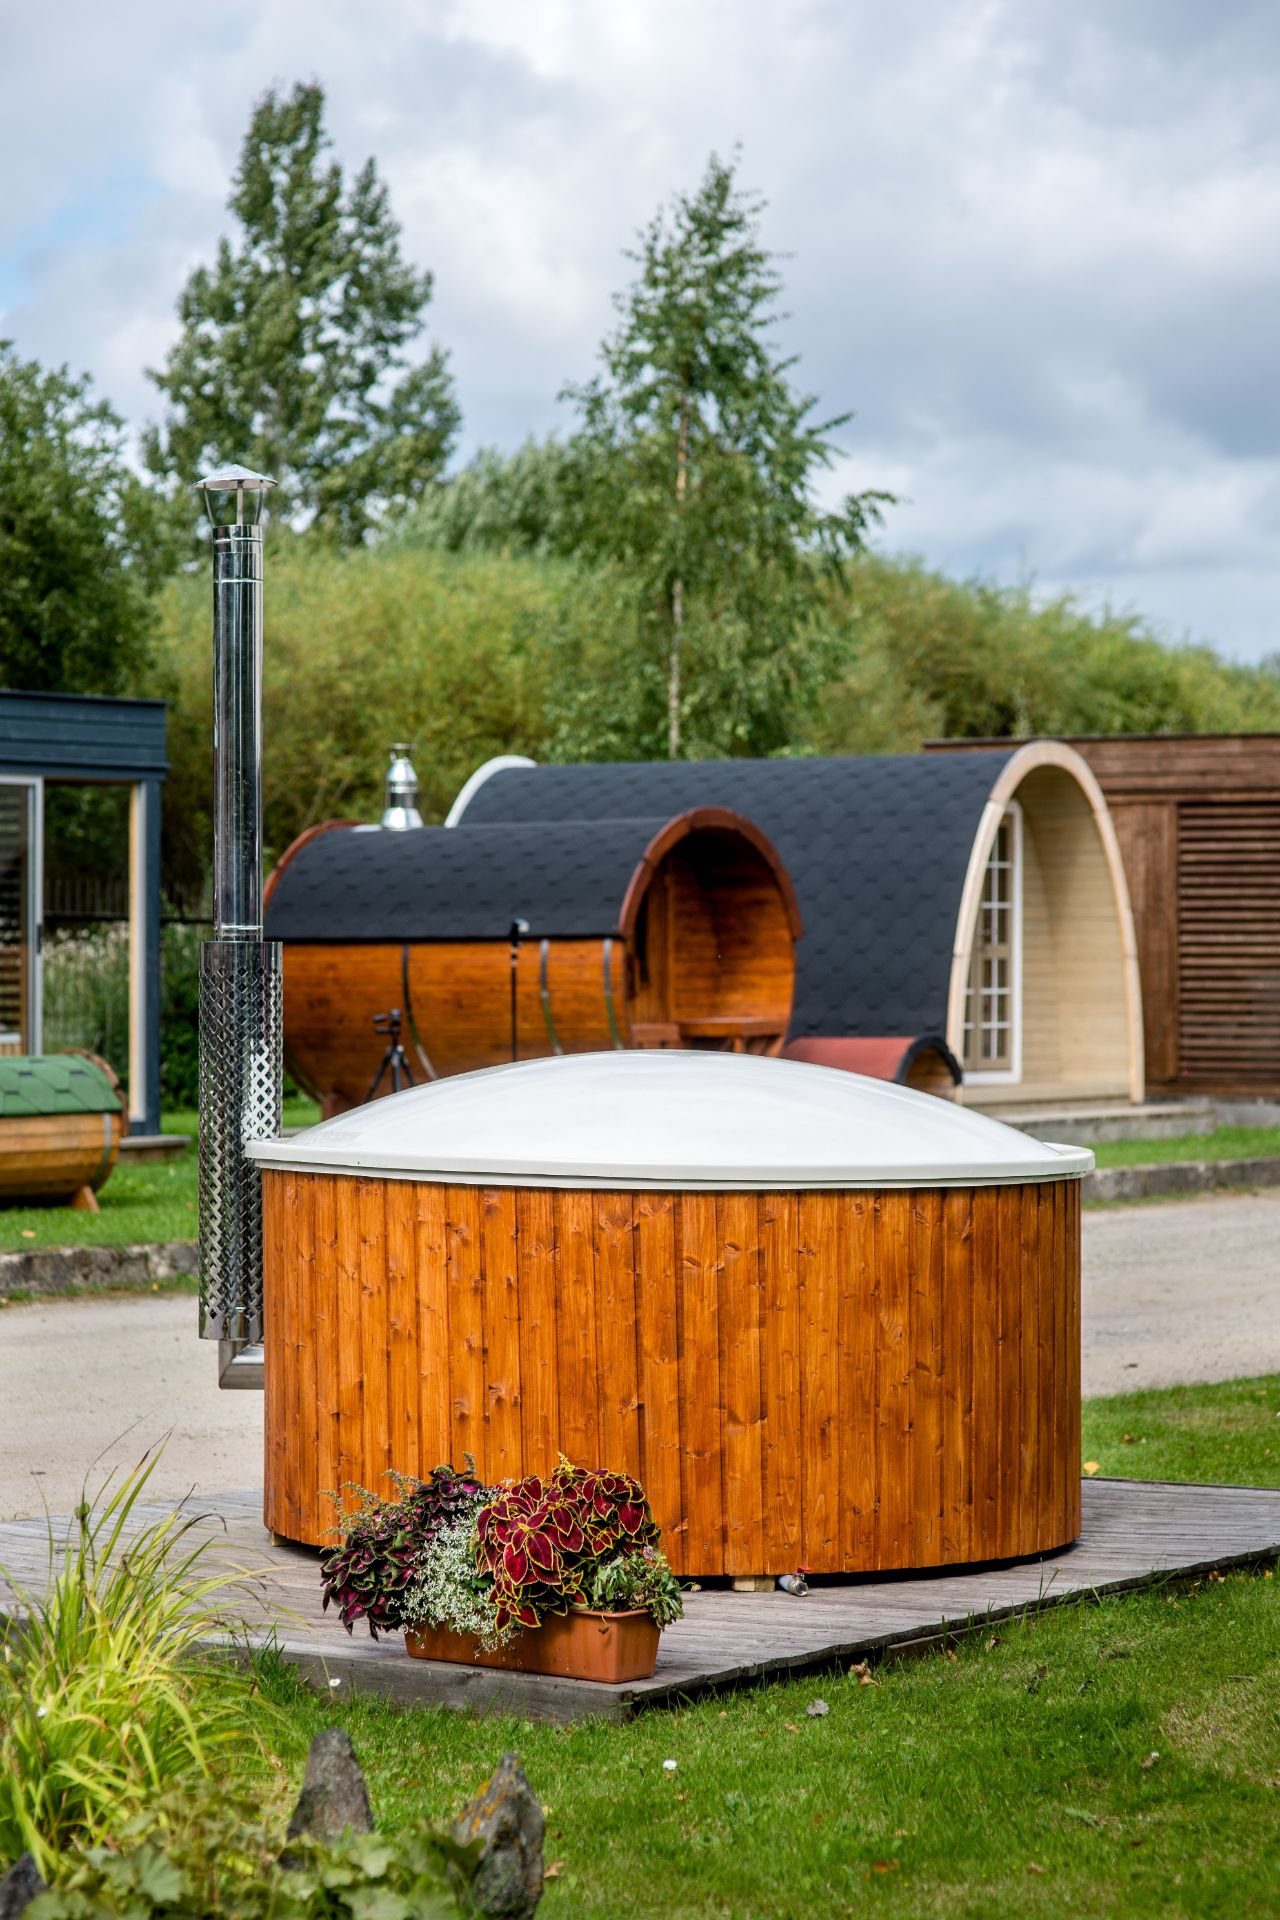 + VAT Brand New Luxurious Extra Large Thermo Wood 1.8m Hot Tub With Air Bubble & Hydro Massage - Image 2 of 4